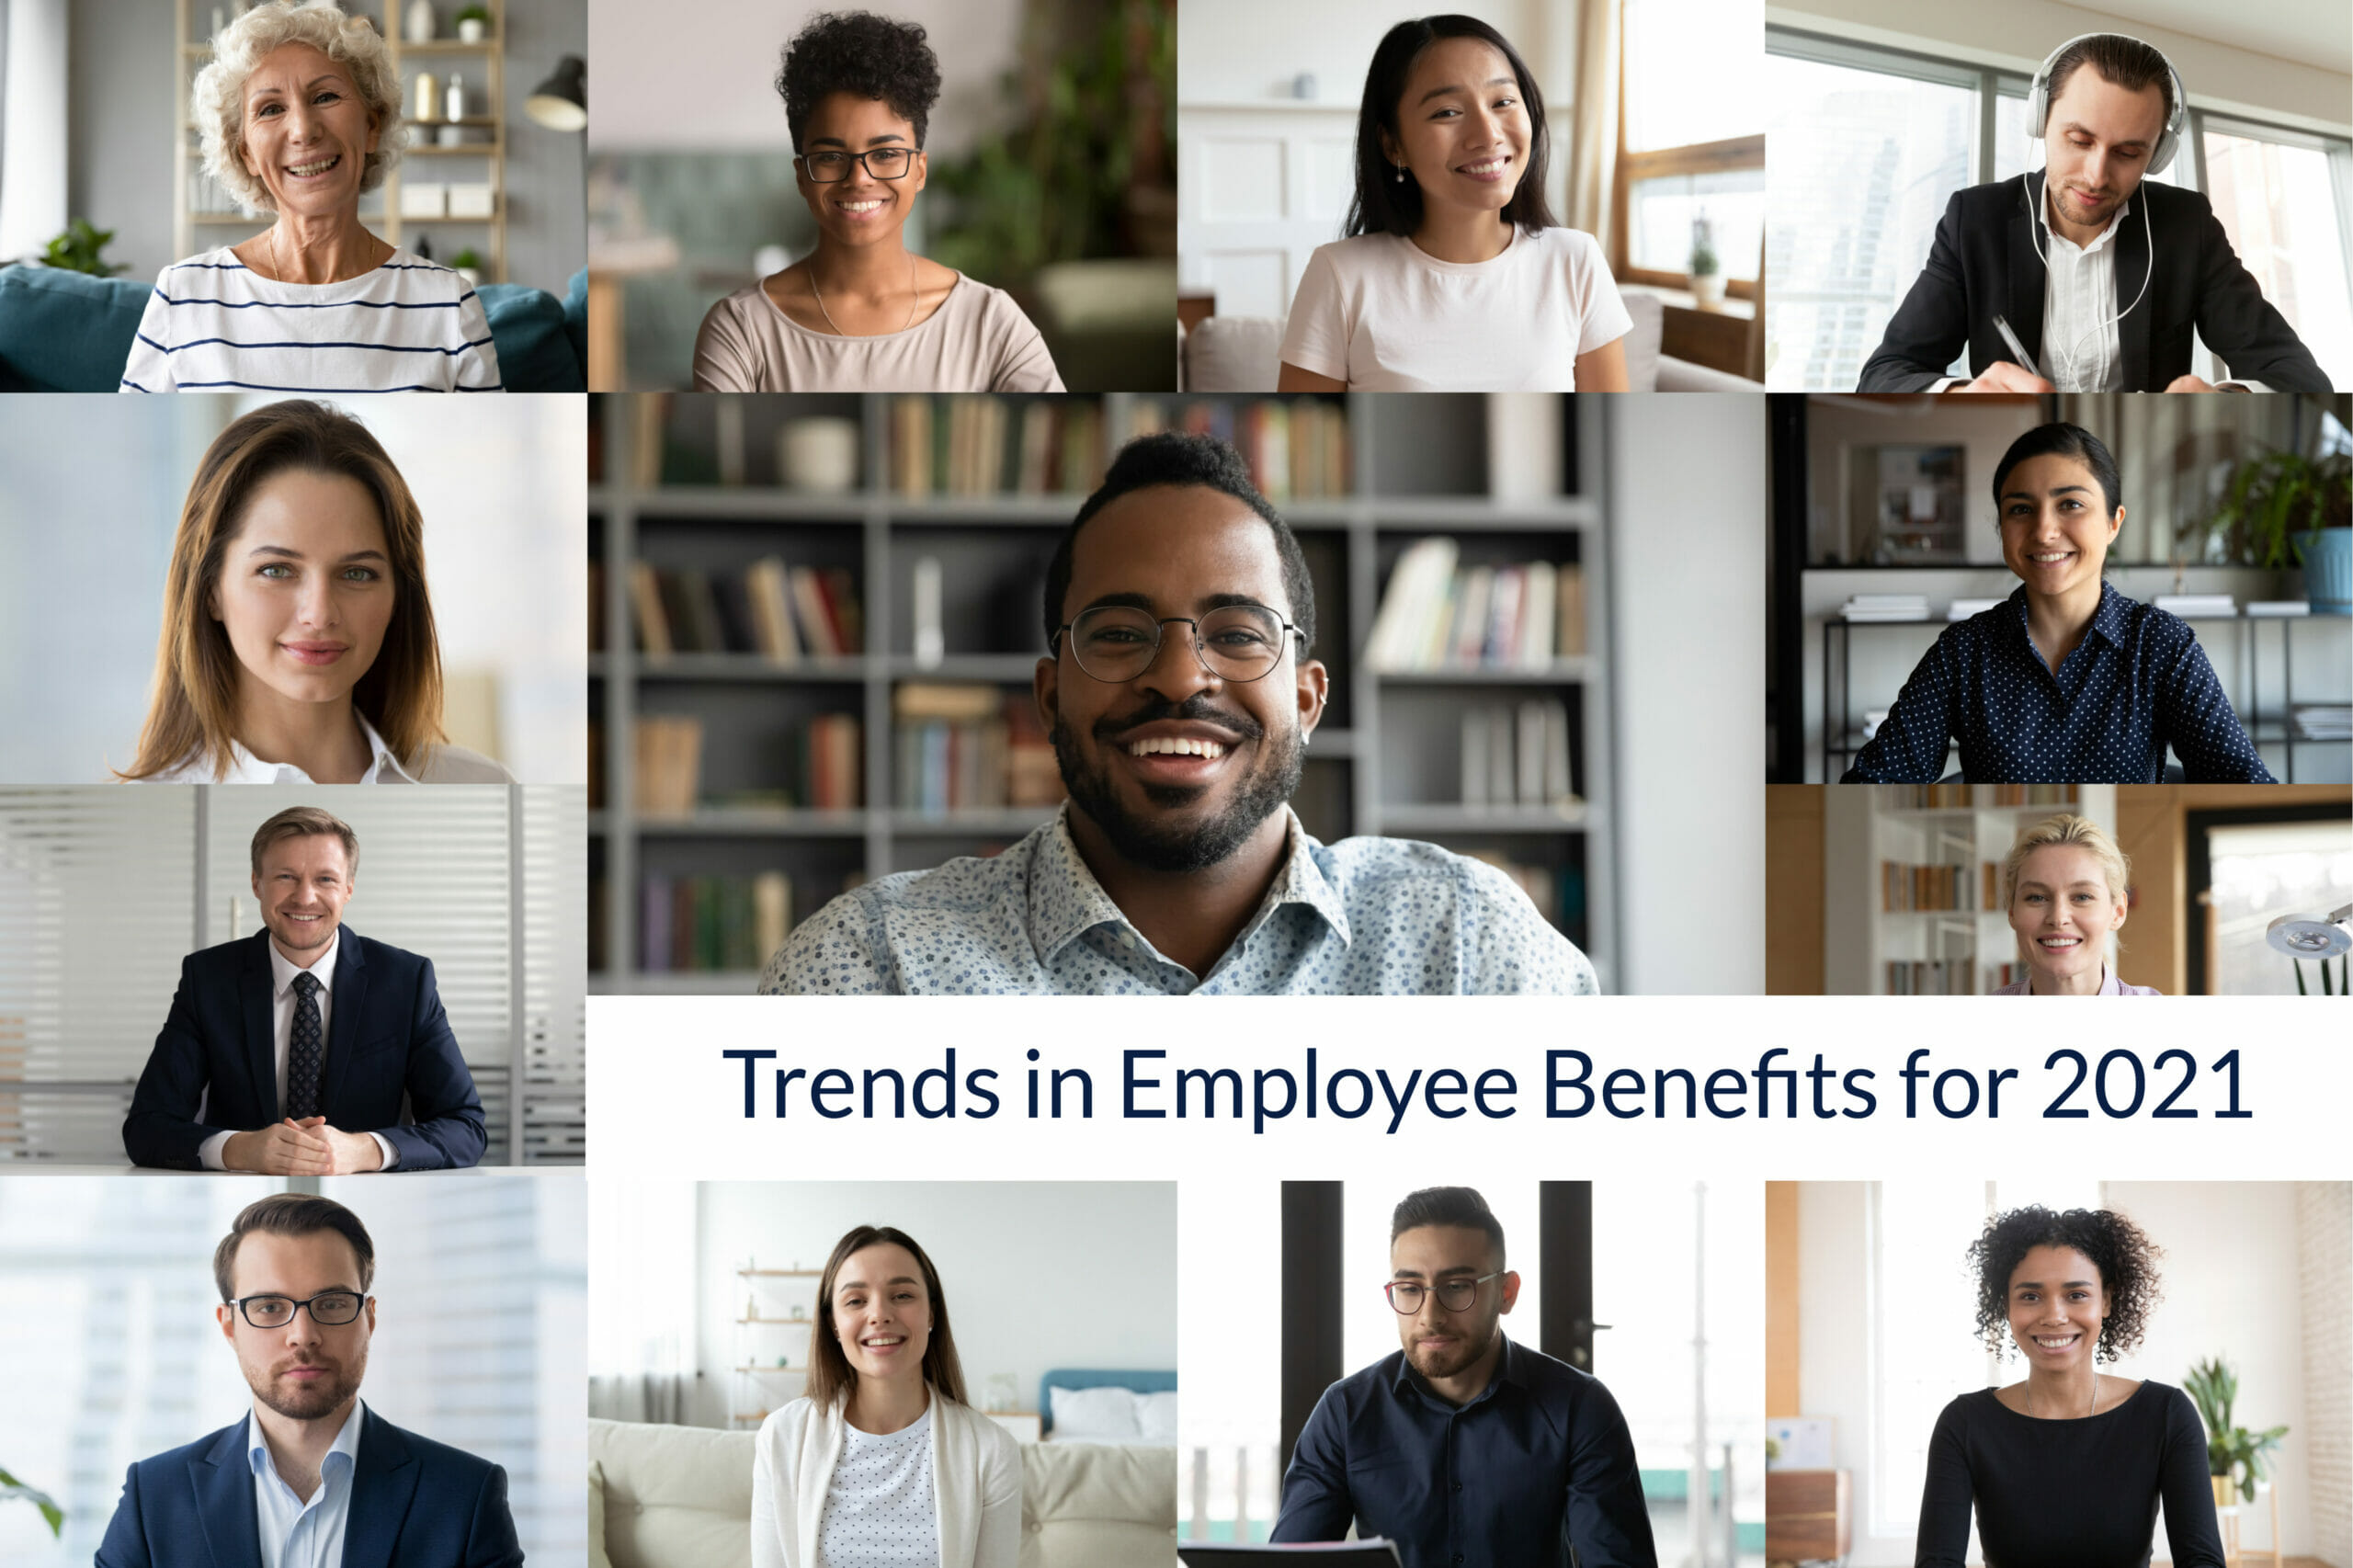 Trends in employee benefits 2021